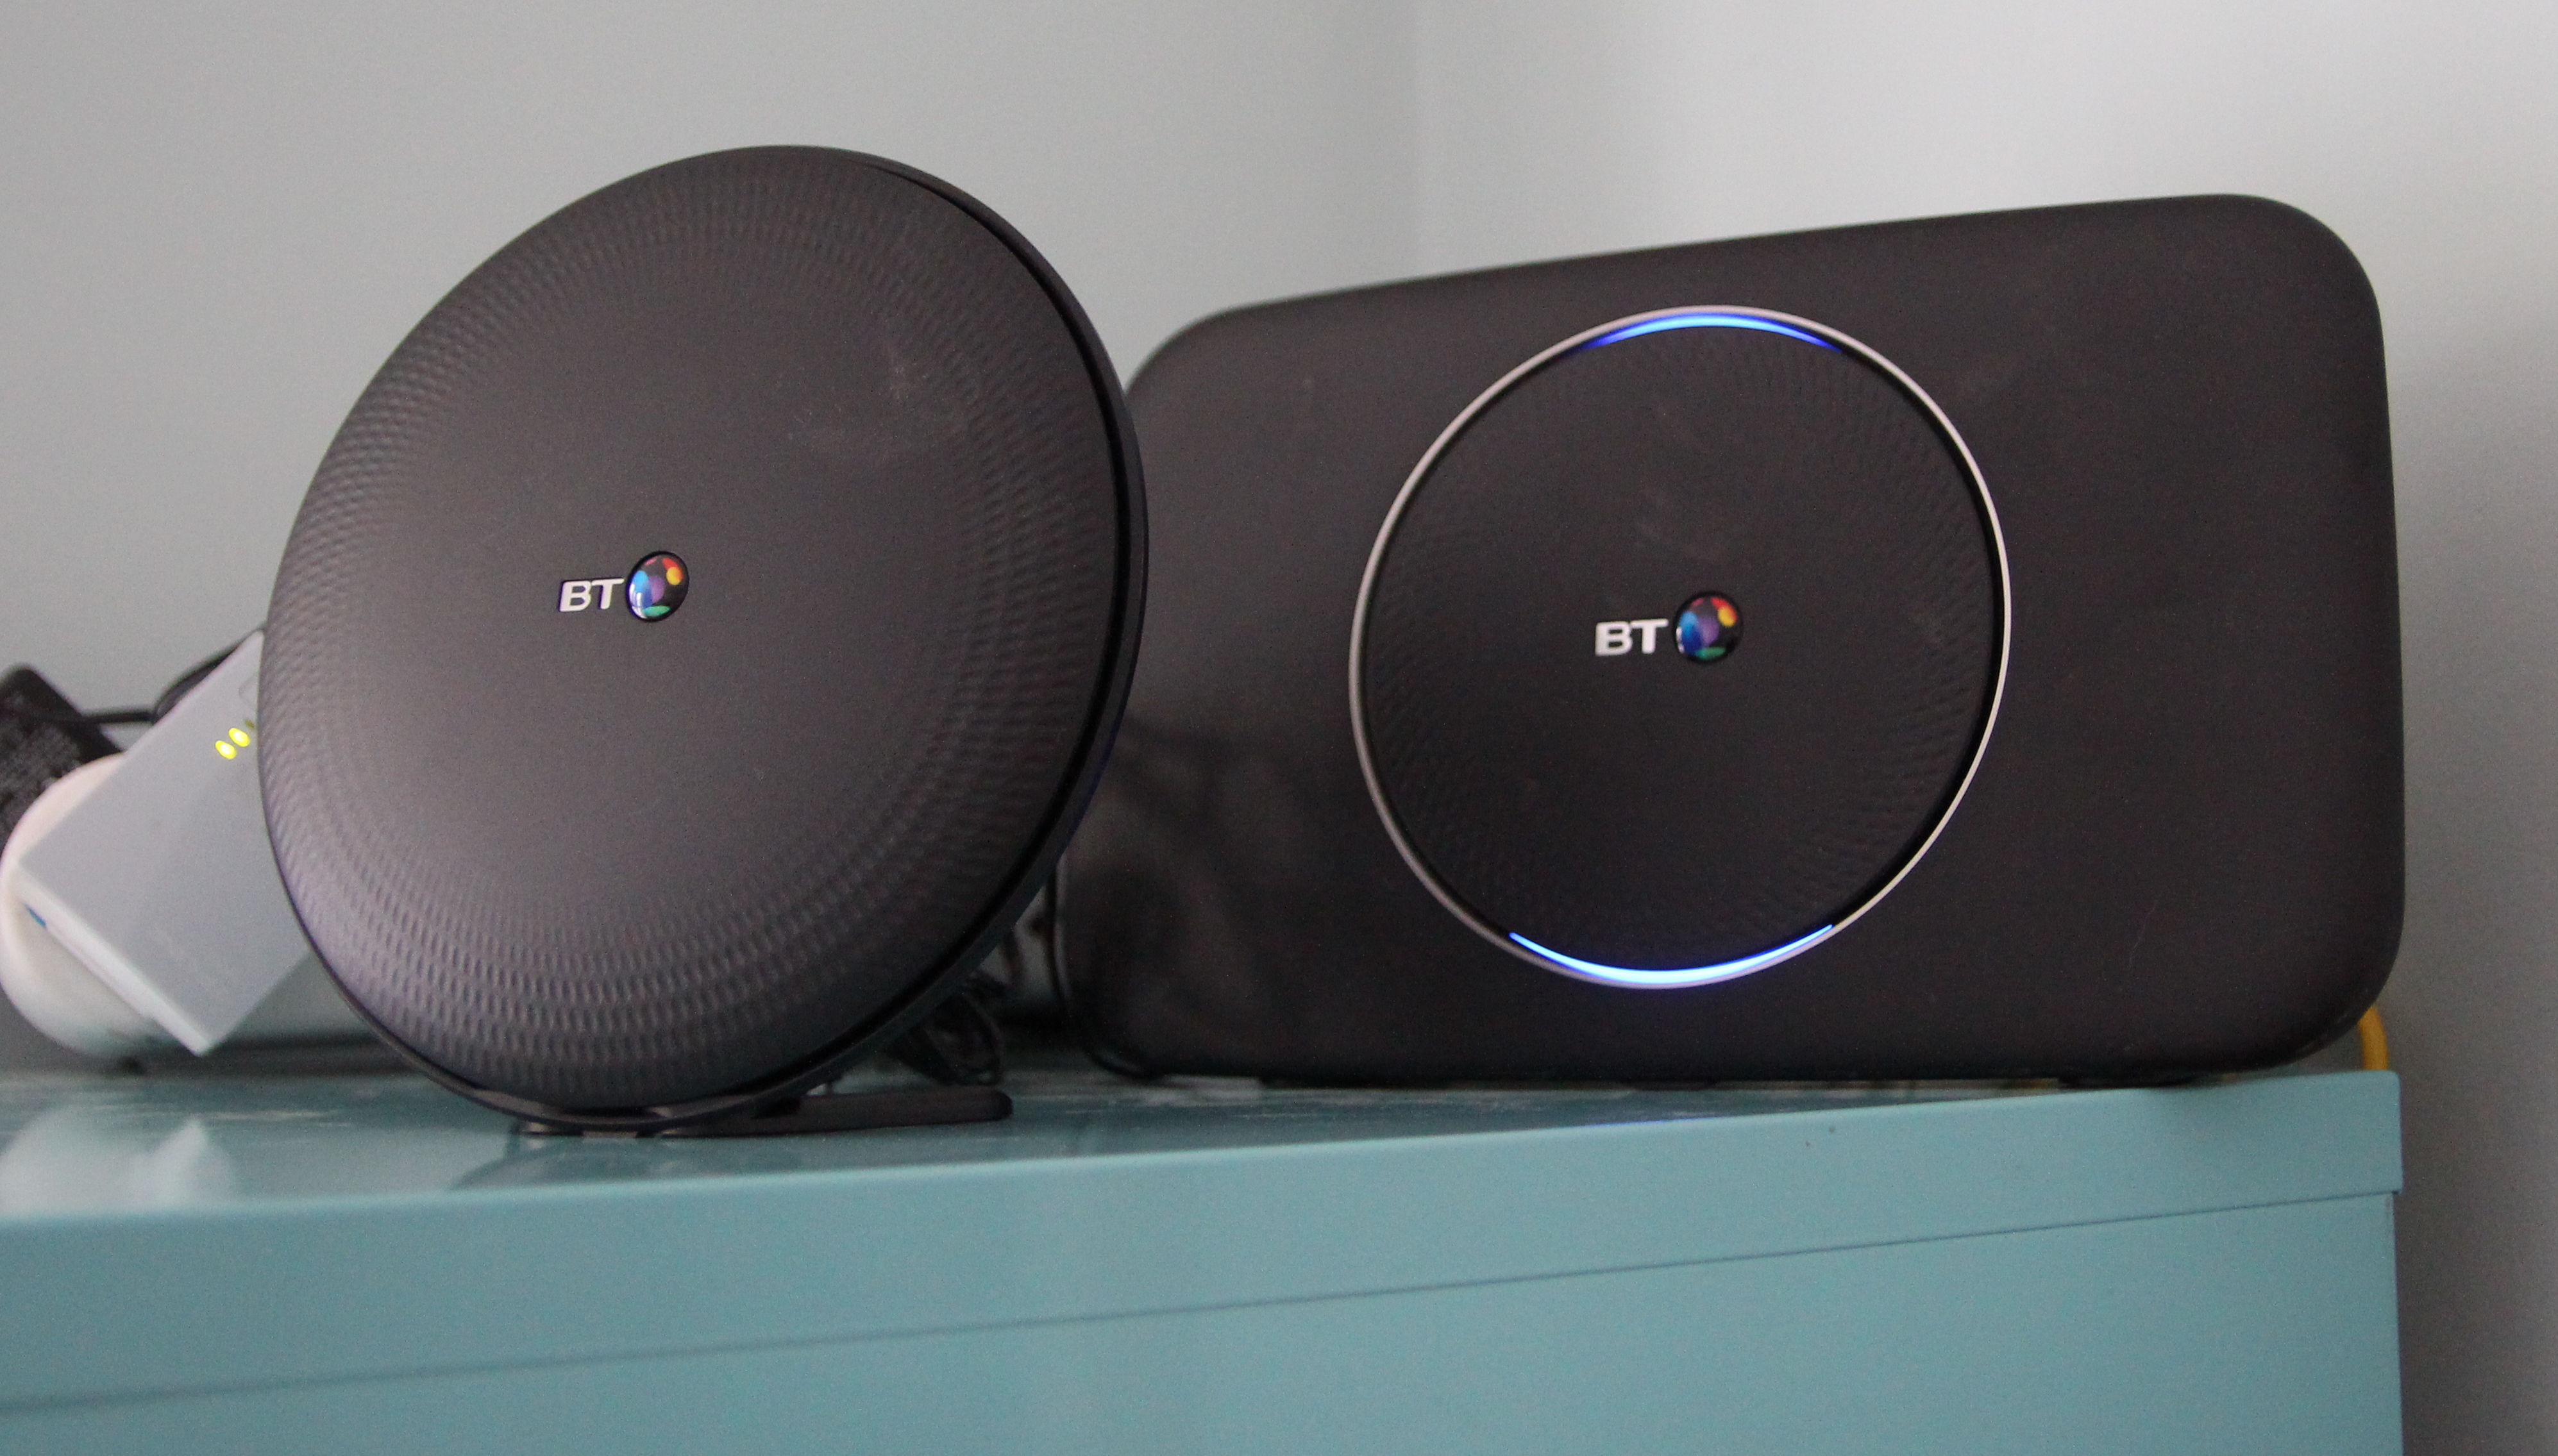 Review: BT Complete WiFi, from £39.99